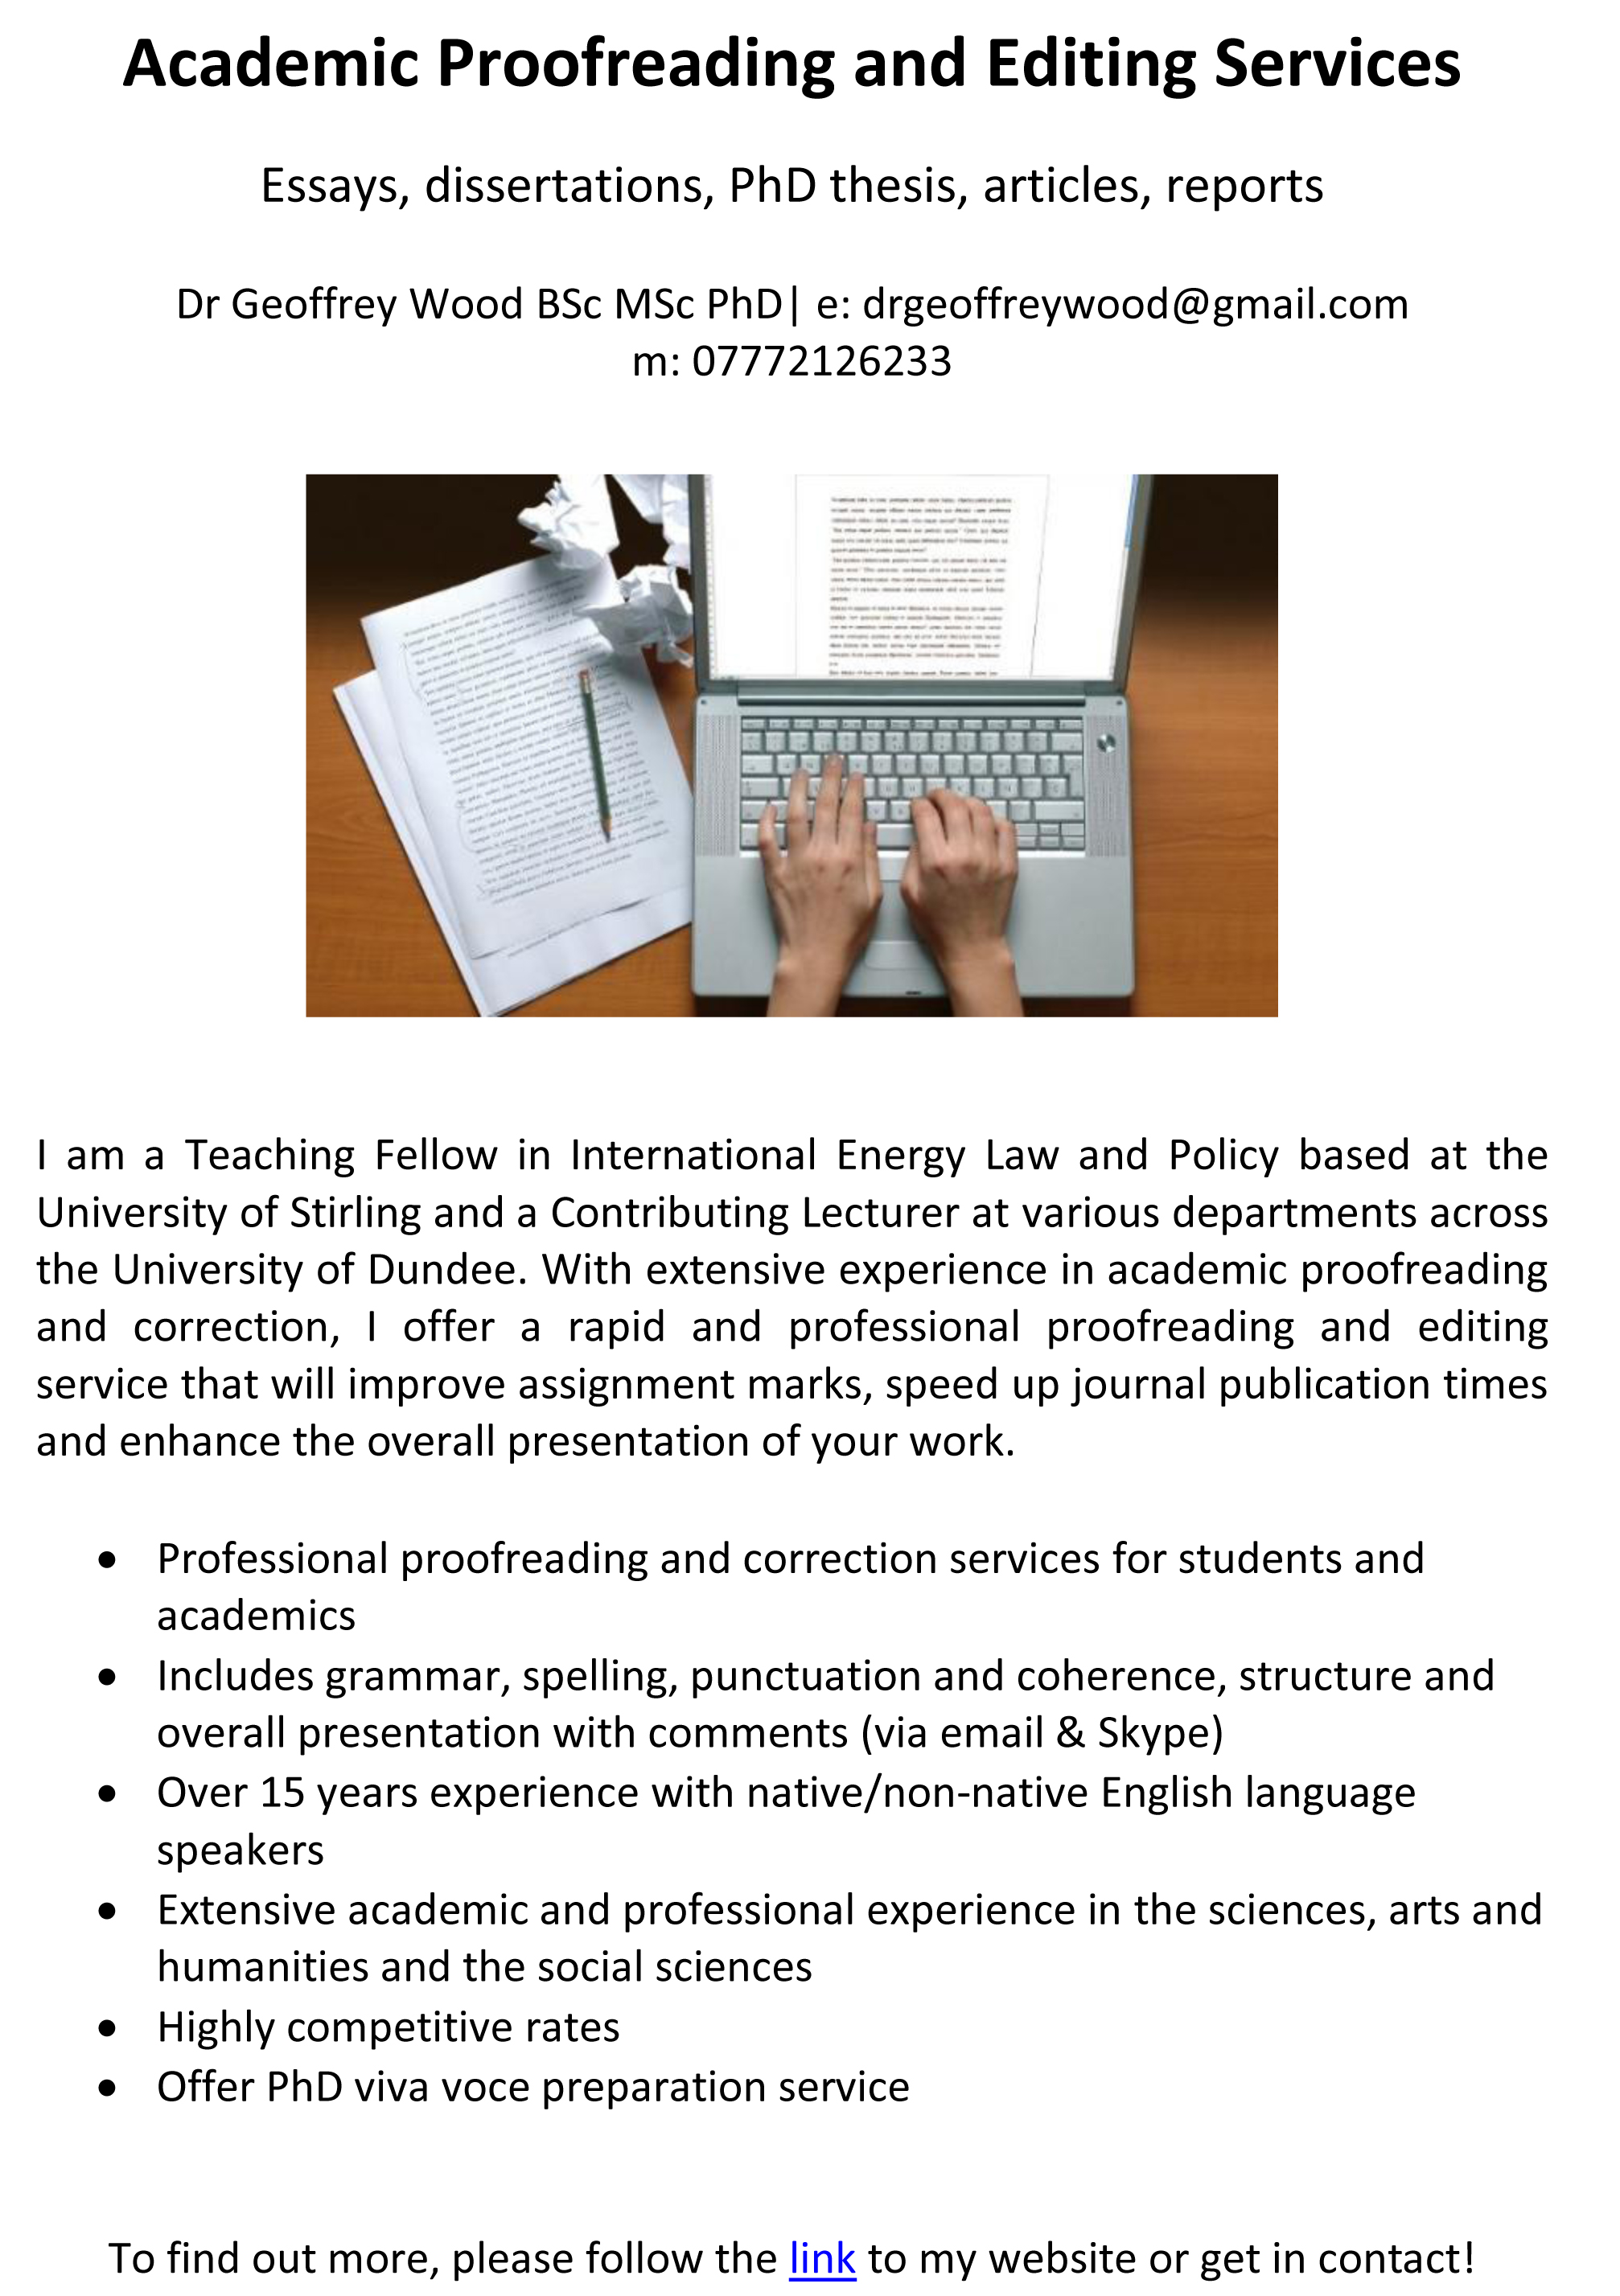 proof essays professional persuasive essay proofreading  contact me academic proofreading and editing services academic proofreading and editing services brochure 2015